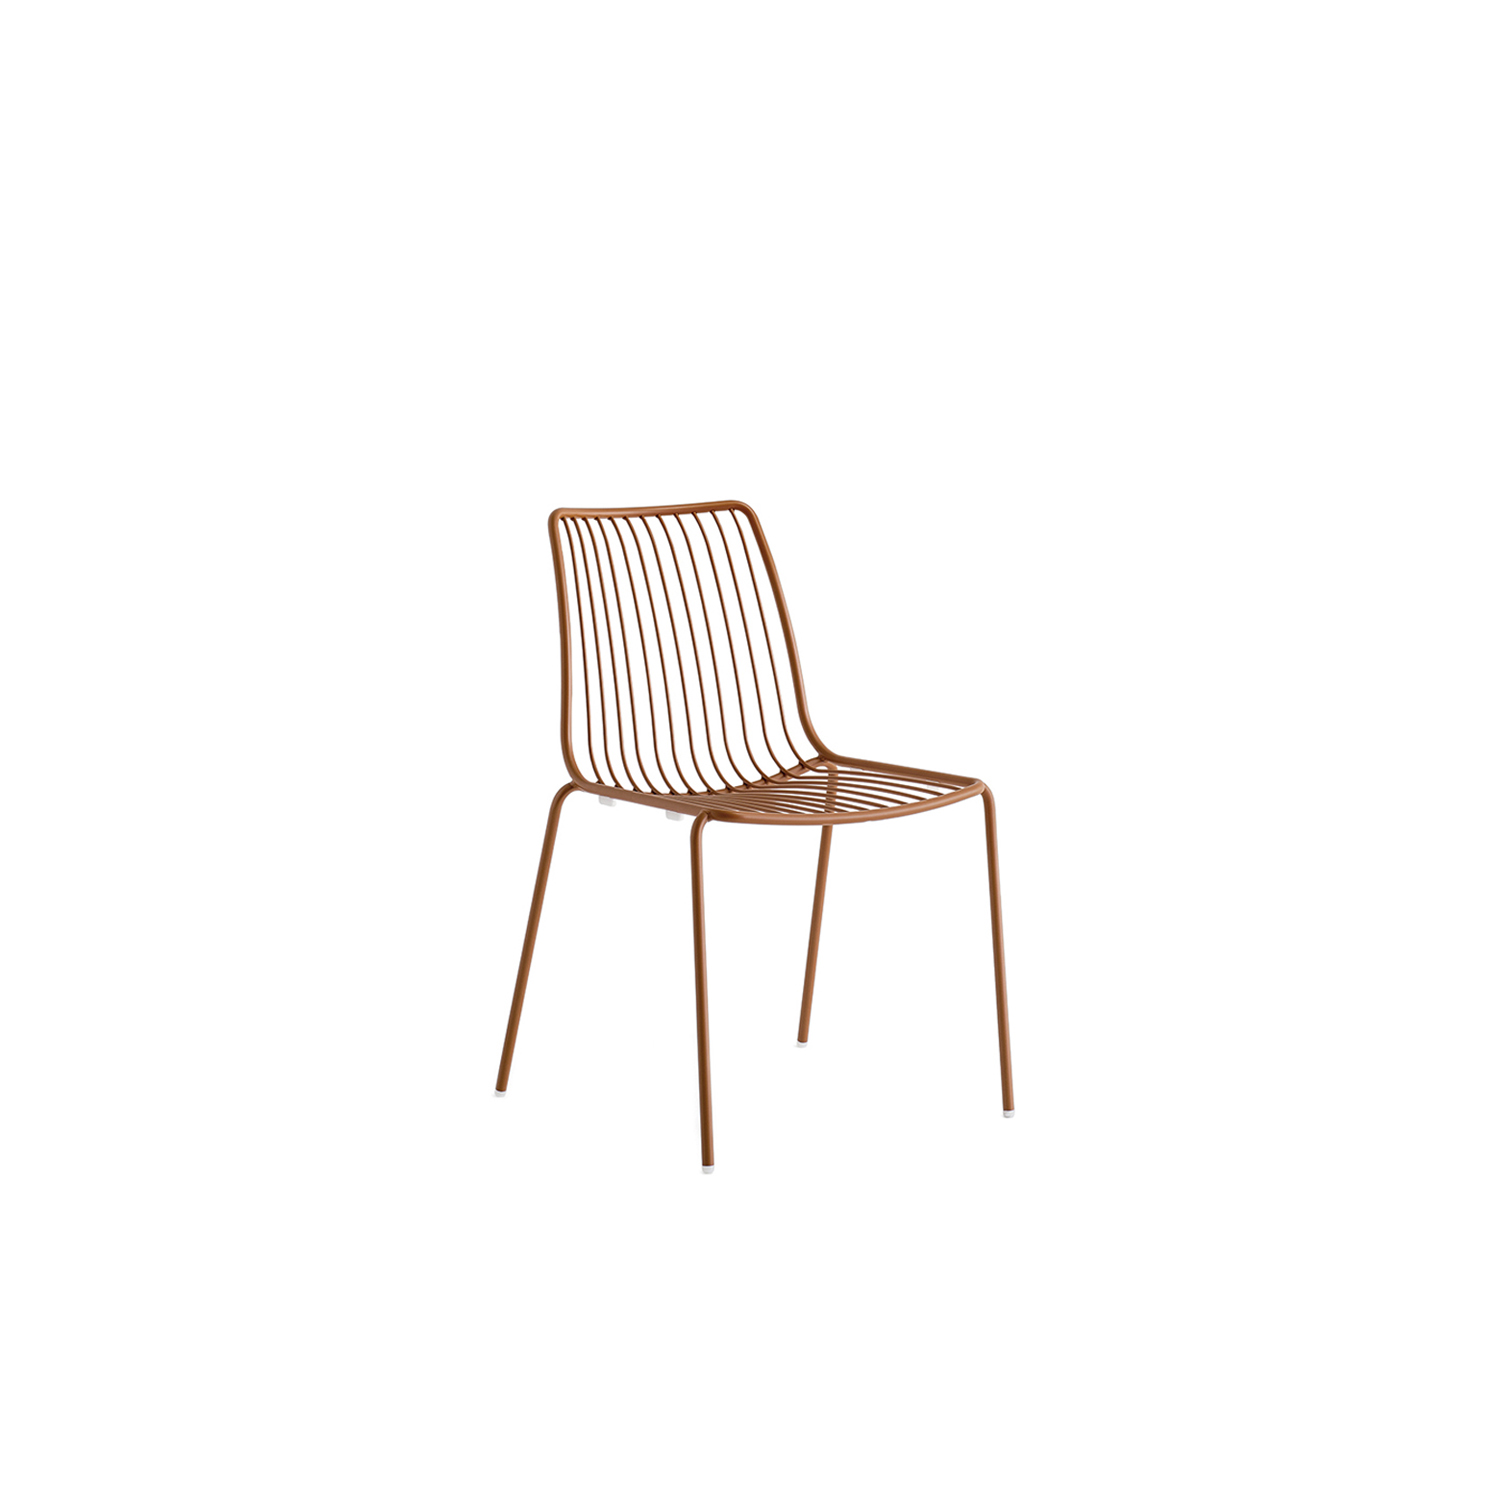 Nolita Chair High Back - Nolita is a family of outdoor seatings which recalls the origins of a historic course started by Mario Pedrali in 1963 with his first metal garden chairs. Chair with high backrest, steel tube frame powder coated for outdoor use.